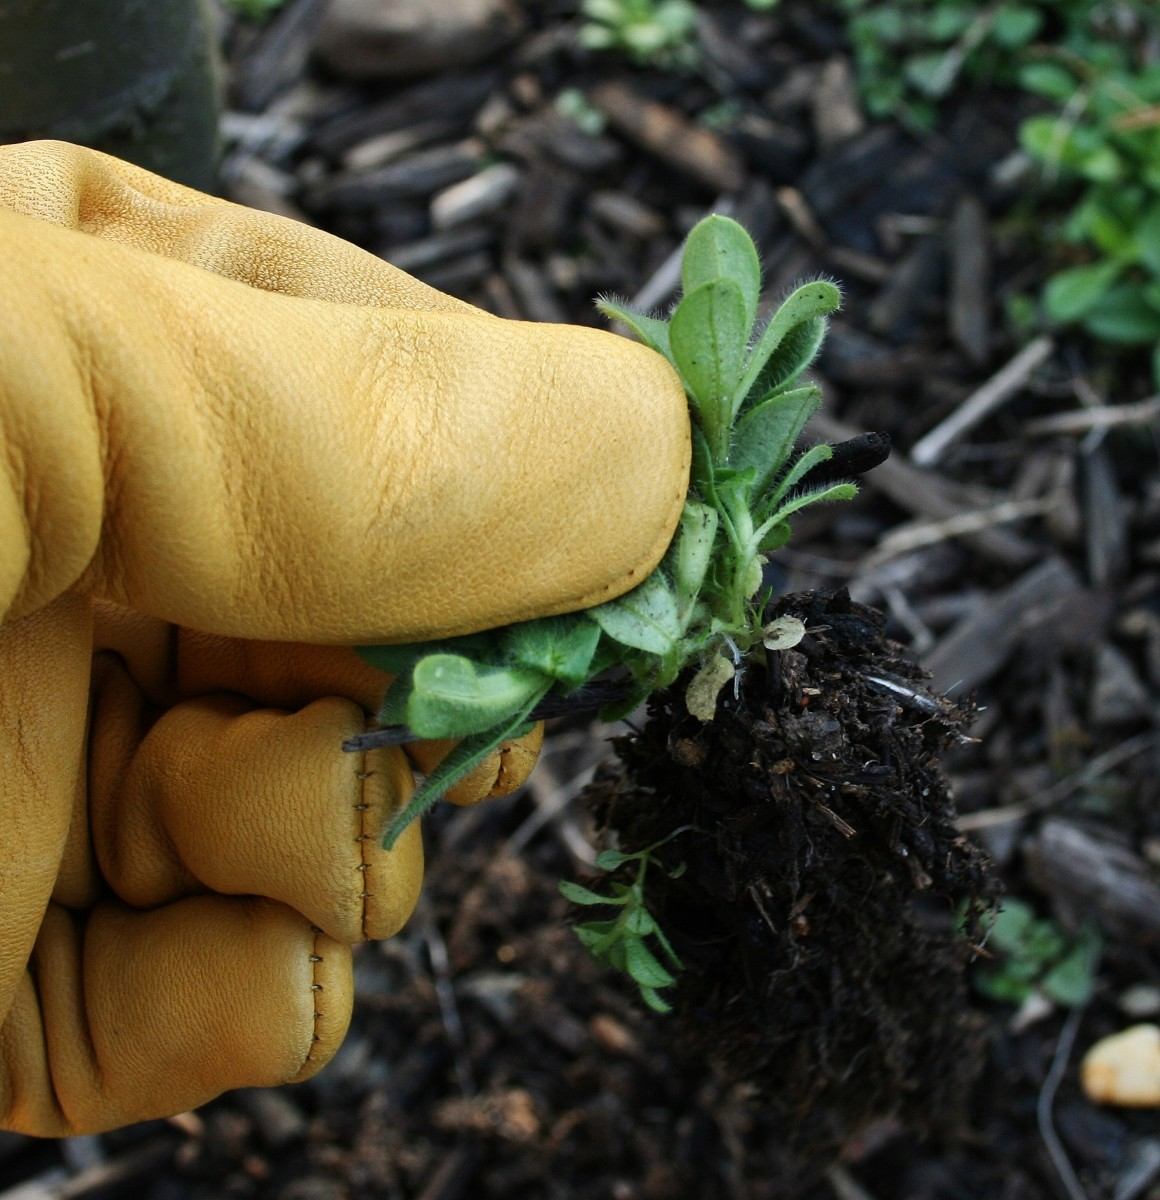 Gold Leaf gloves fit well so tasks that require fine motor skills, like weeding, are easy to perform.